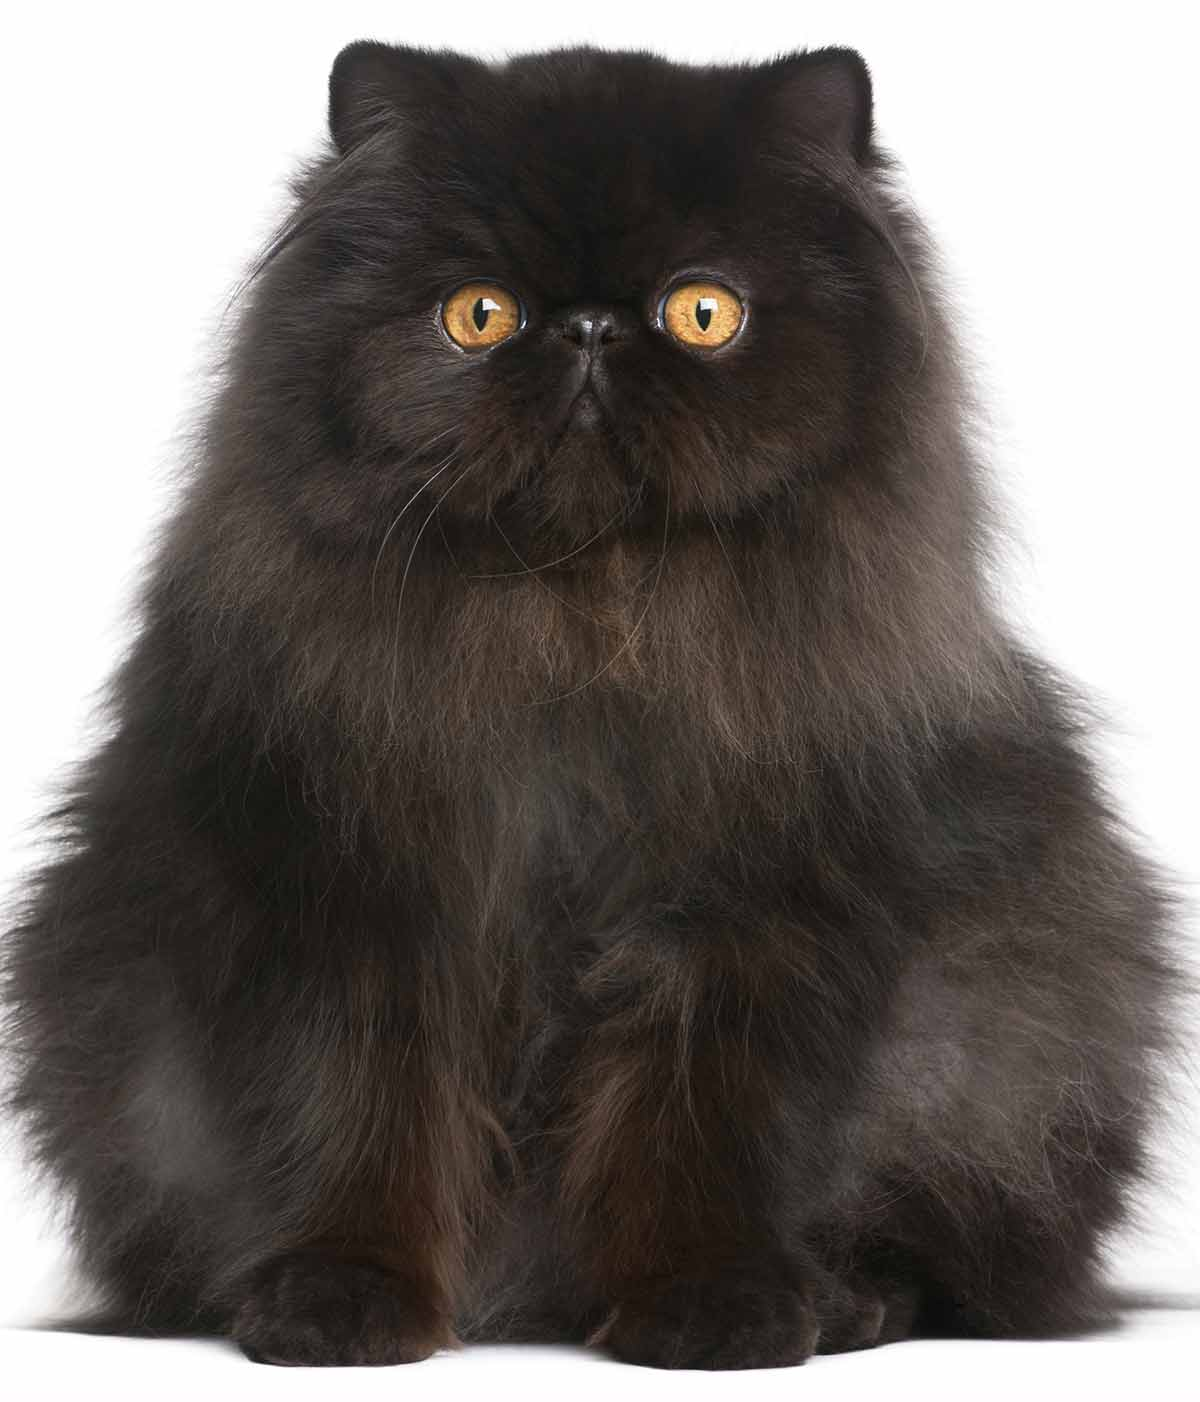 black cat breeds - persian